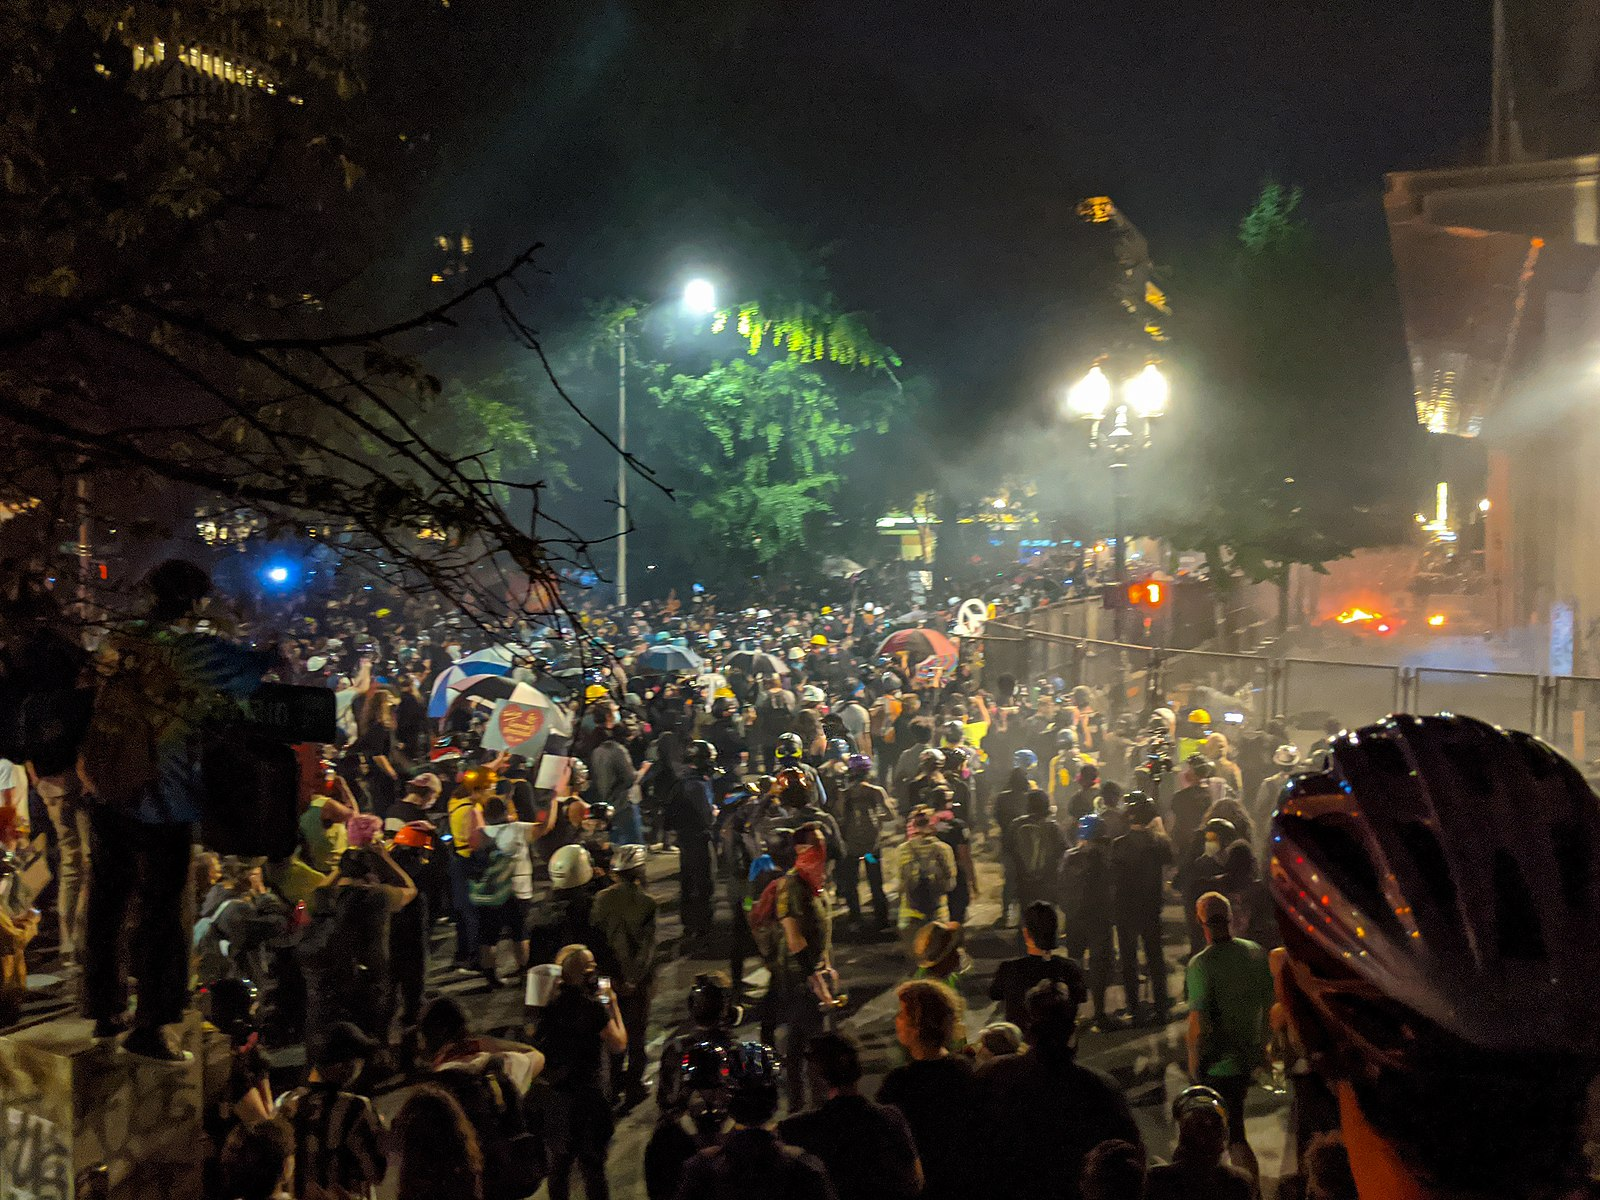 Large crowd gathered at night in protests in Portland Oregon in front of Justice Center where teargas was used